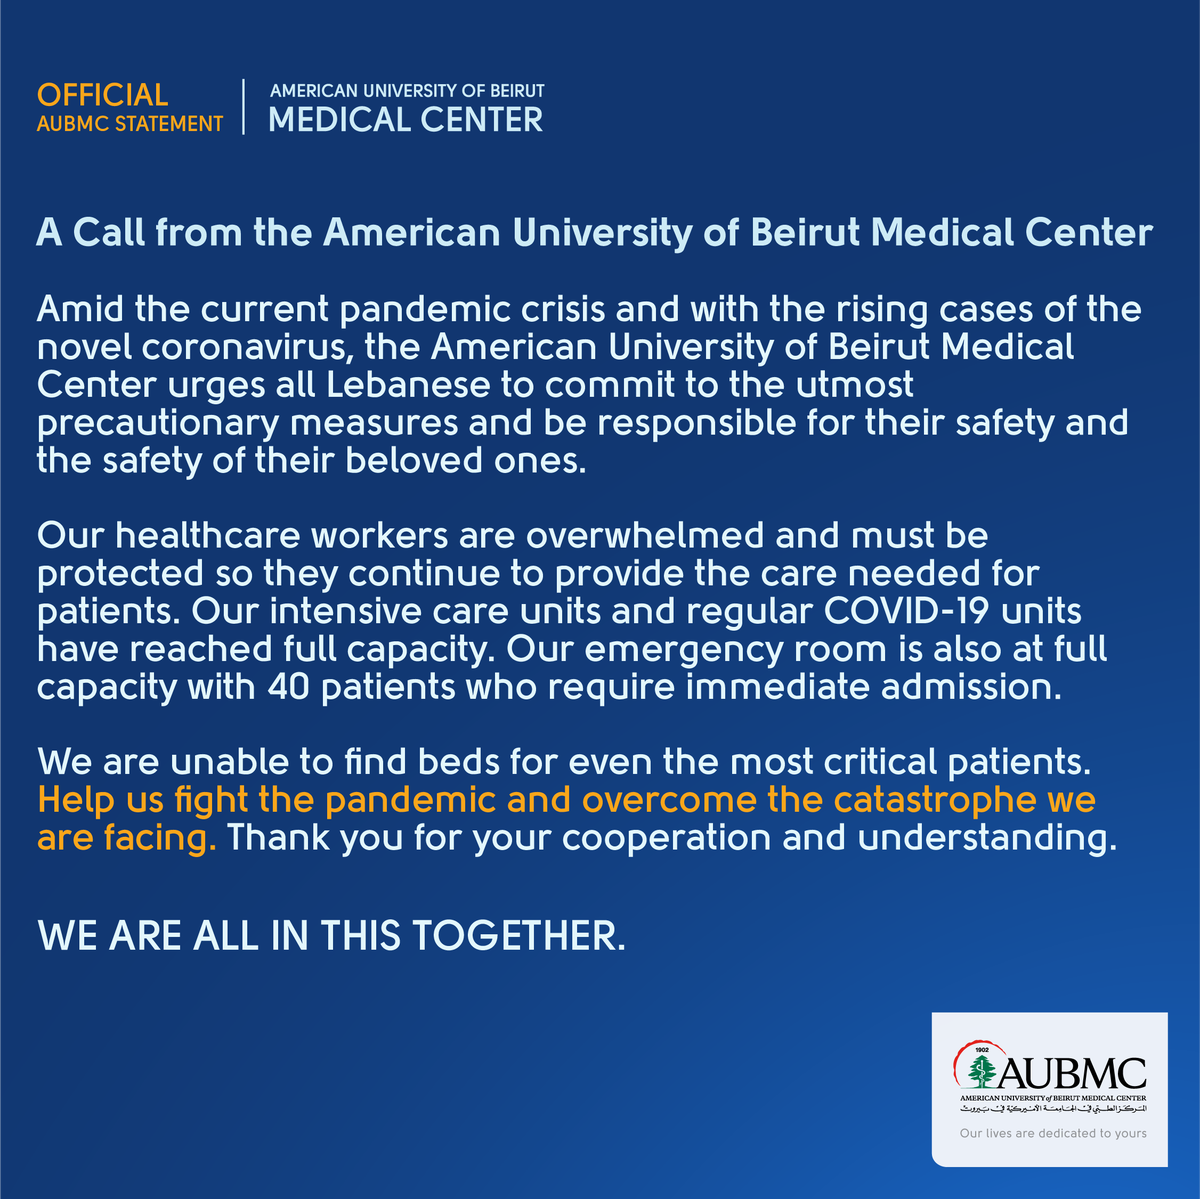 A Call from the American University of Beirut Medical Center #covid19 #staysafe #StayHomeStaySafe #stayhome